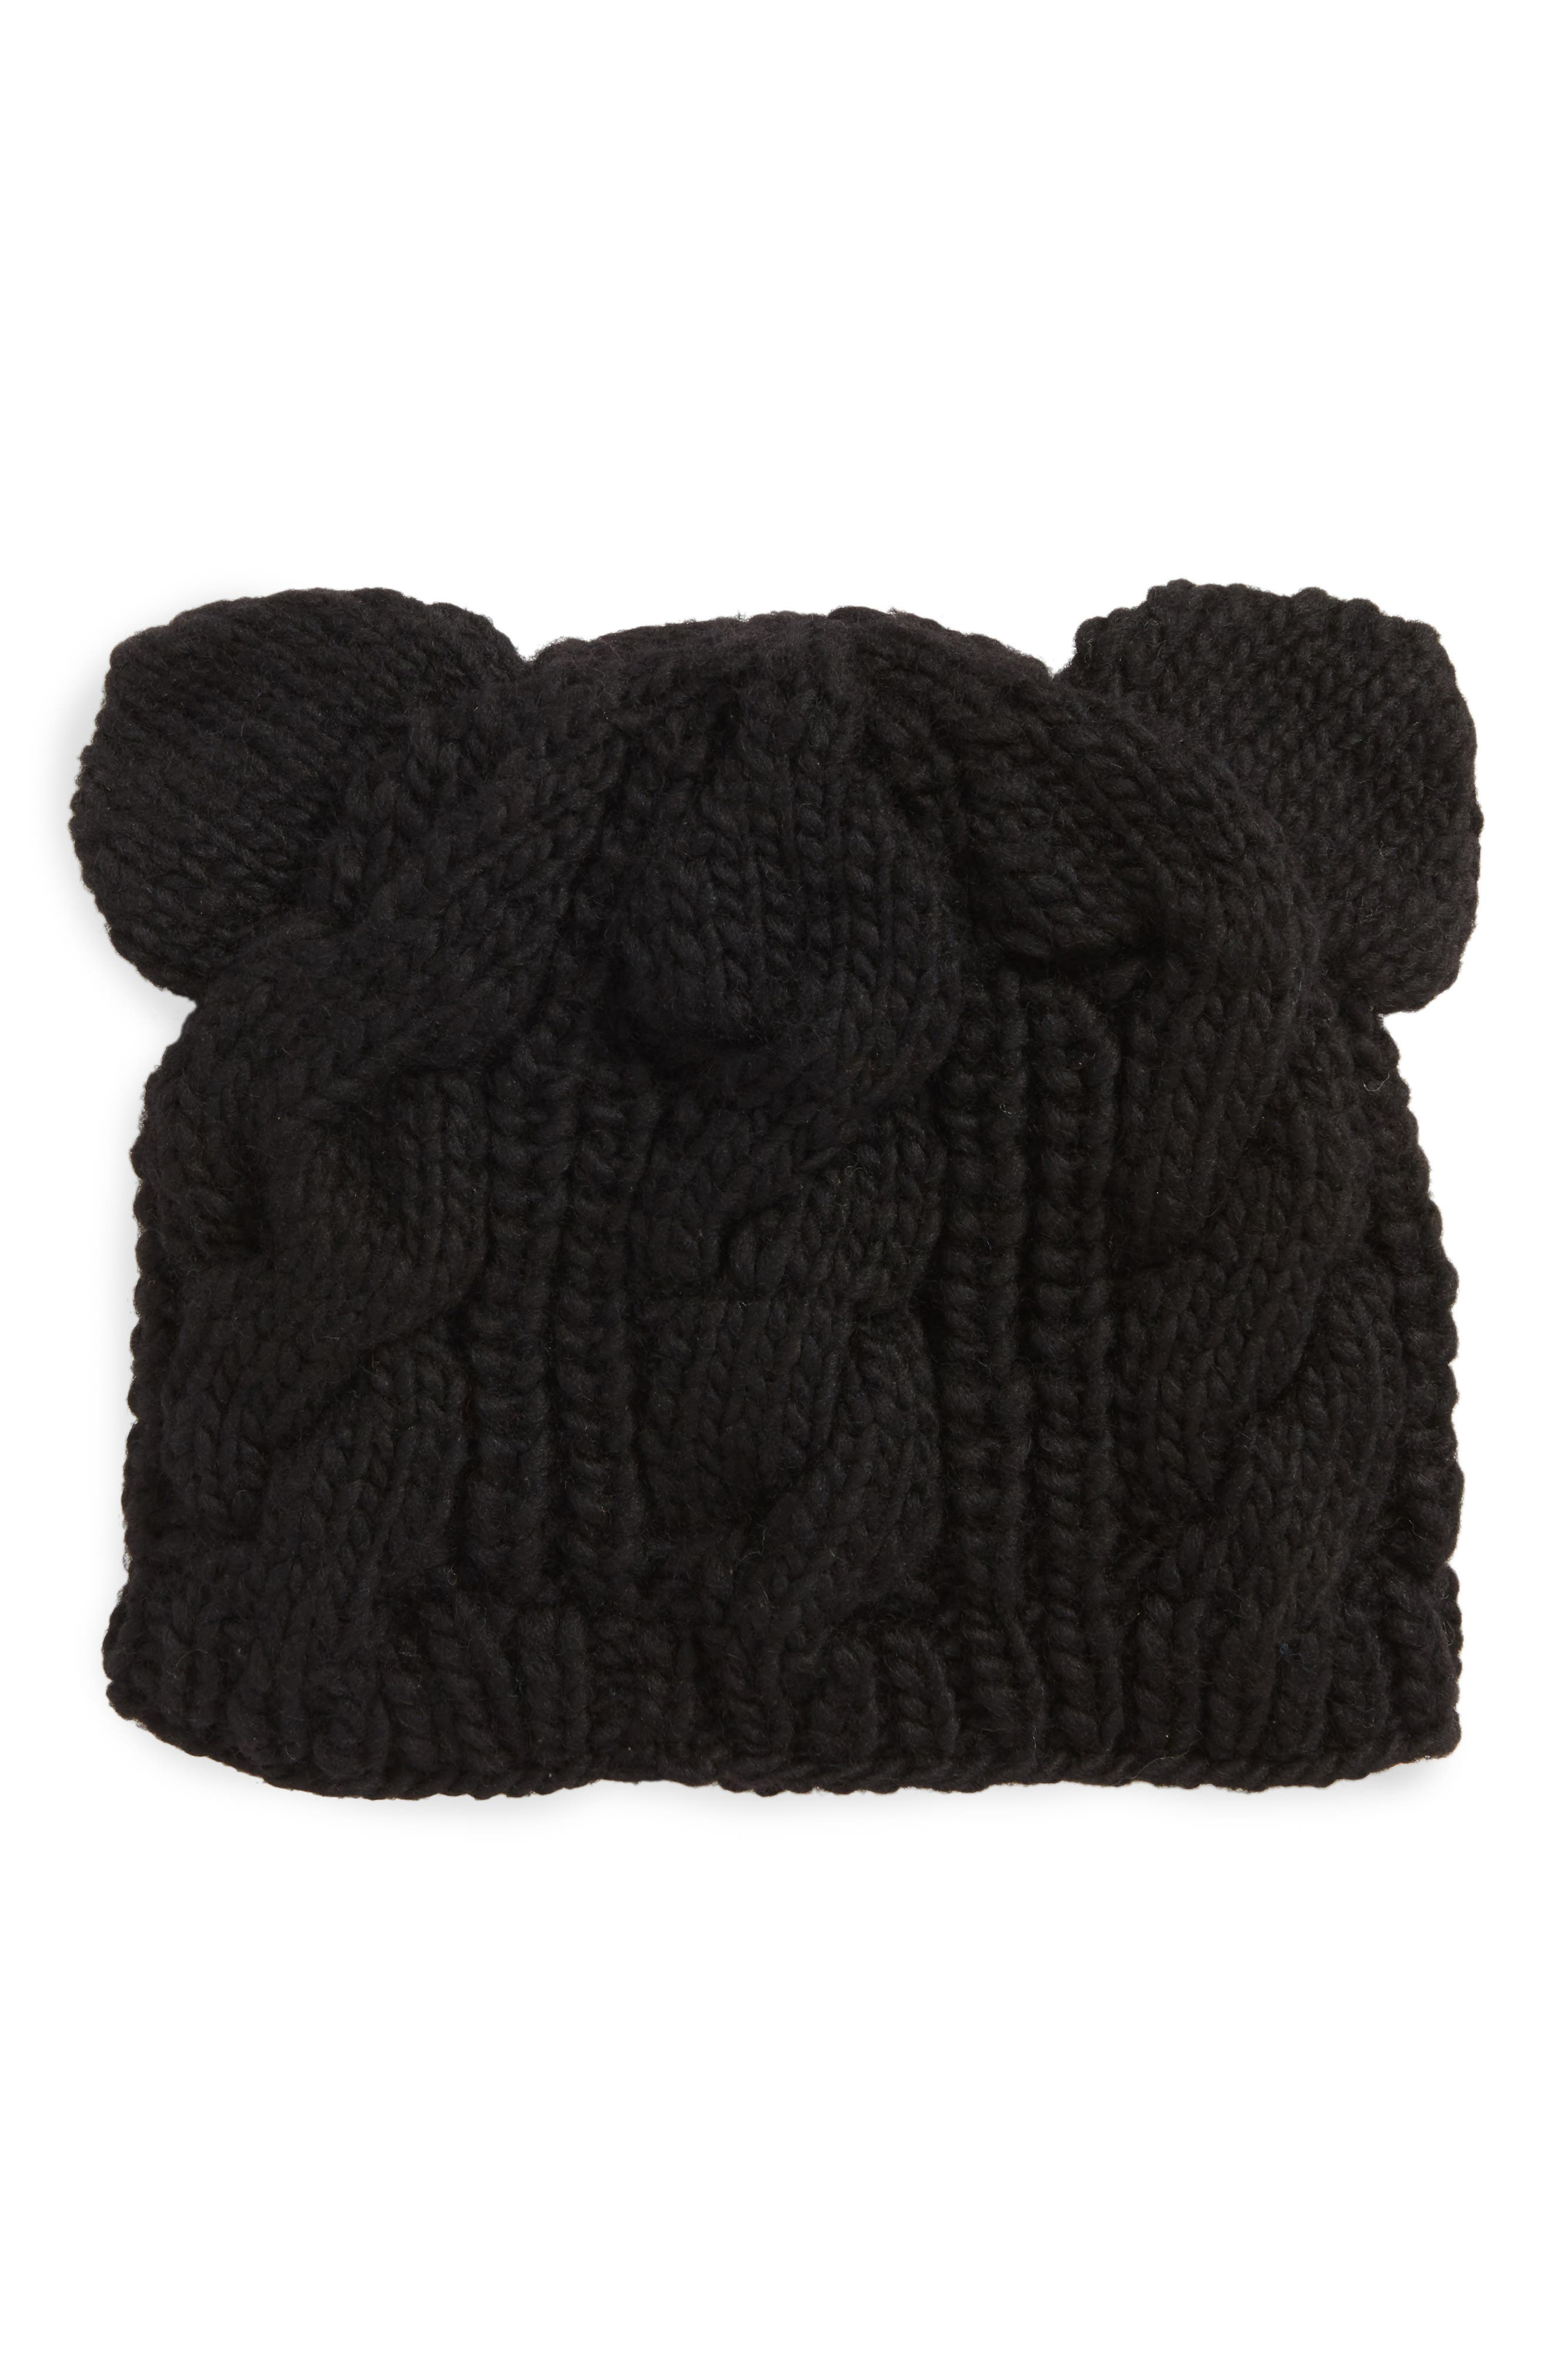 Cable Knit Kitty Beanie,                             Main thumbnail 1, color,                             001